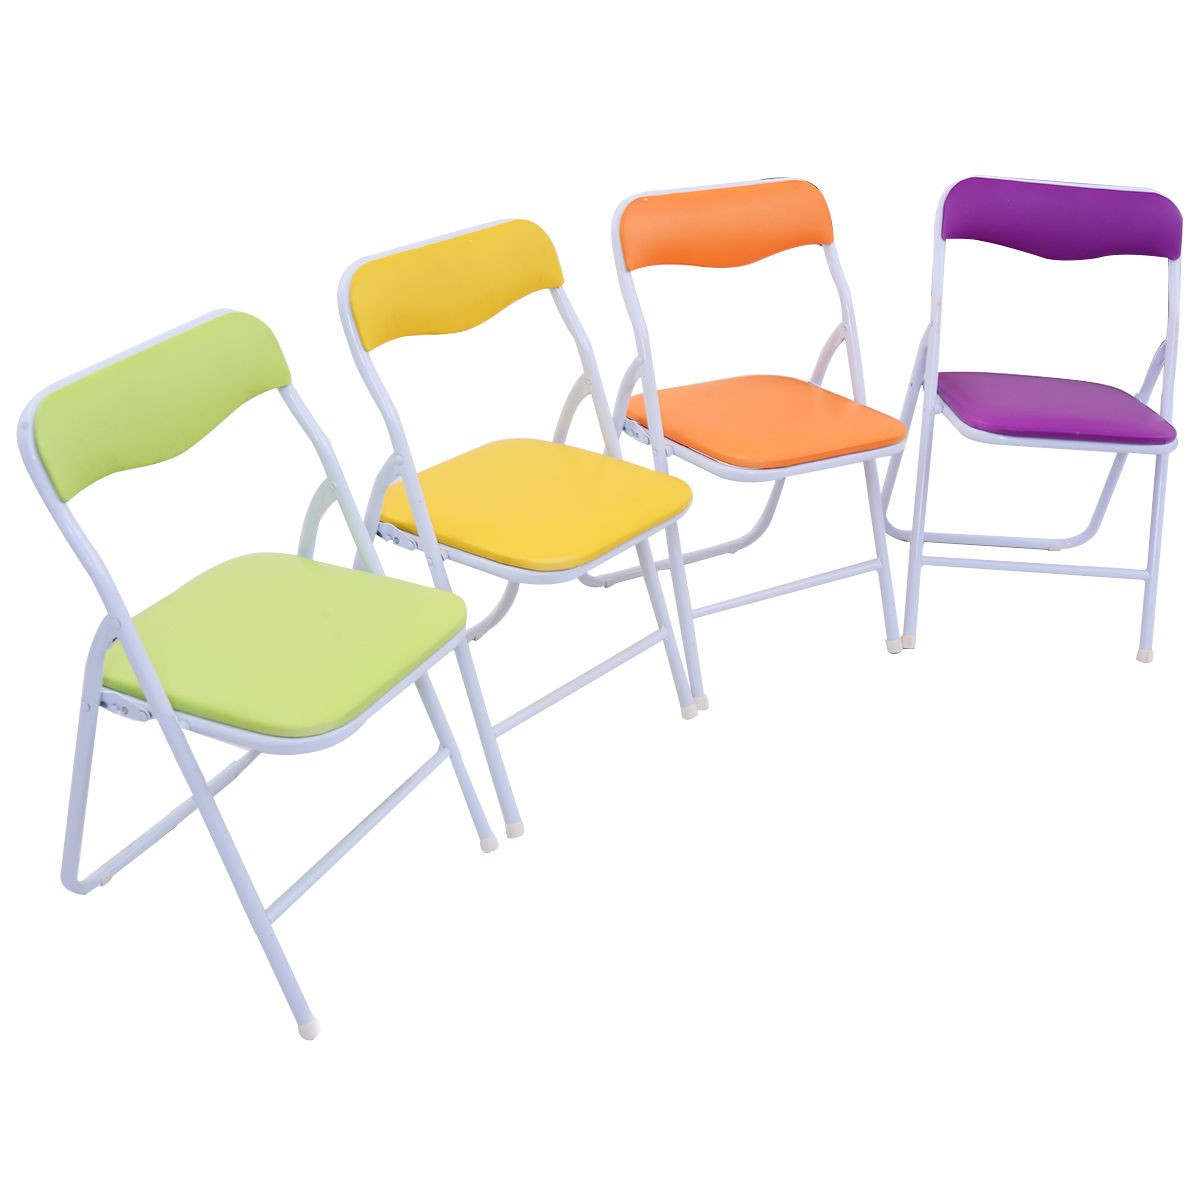 5PCS Folding Table Chair Set Children Kids Multicolor Play Room Furniture US